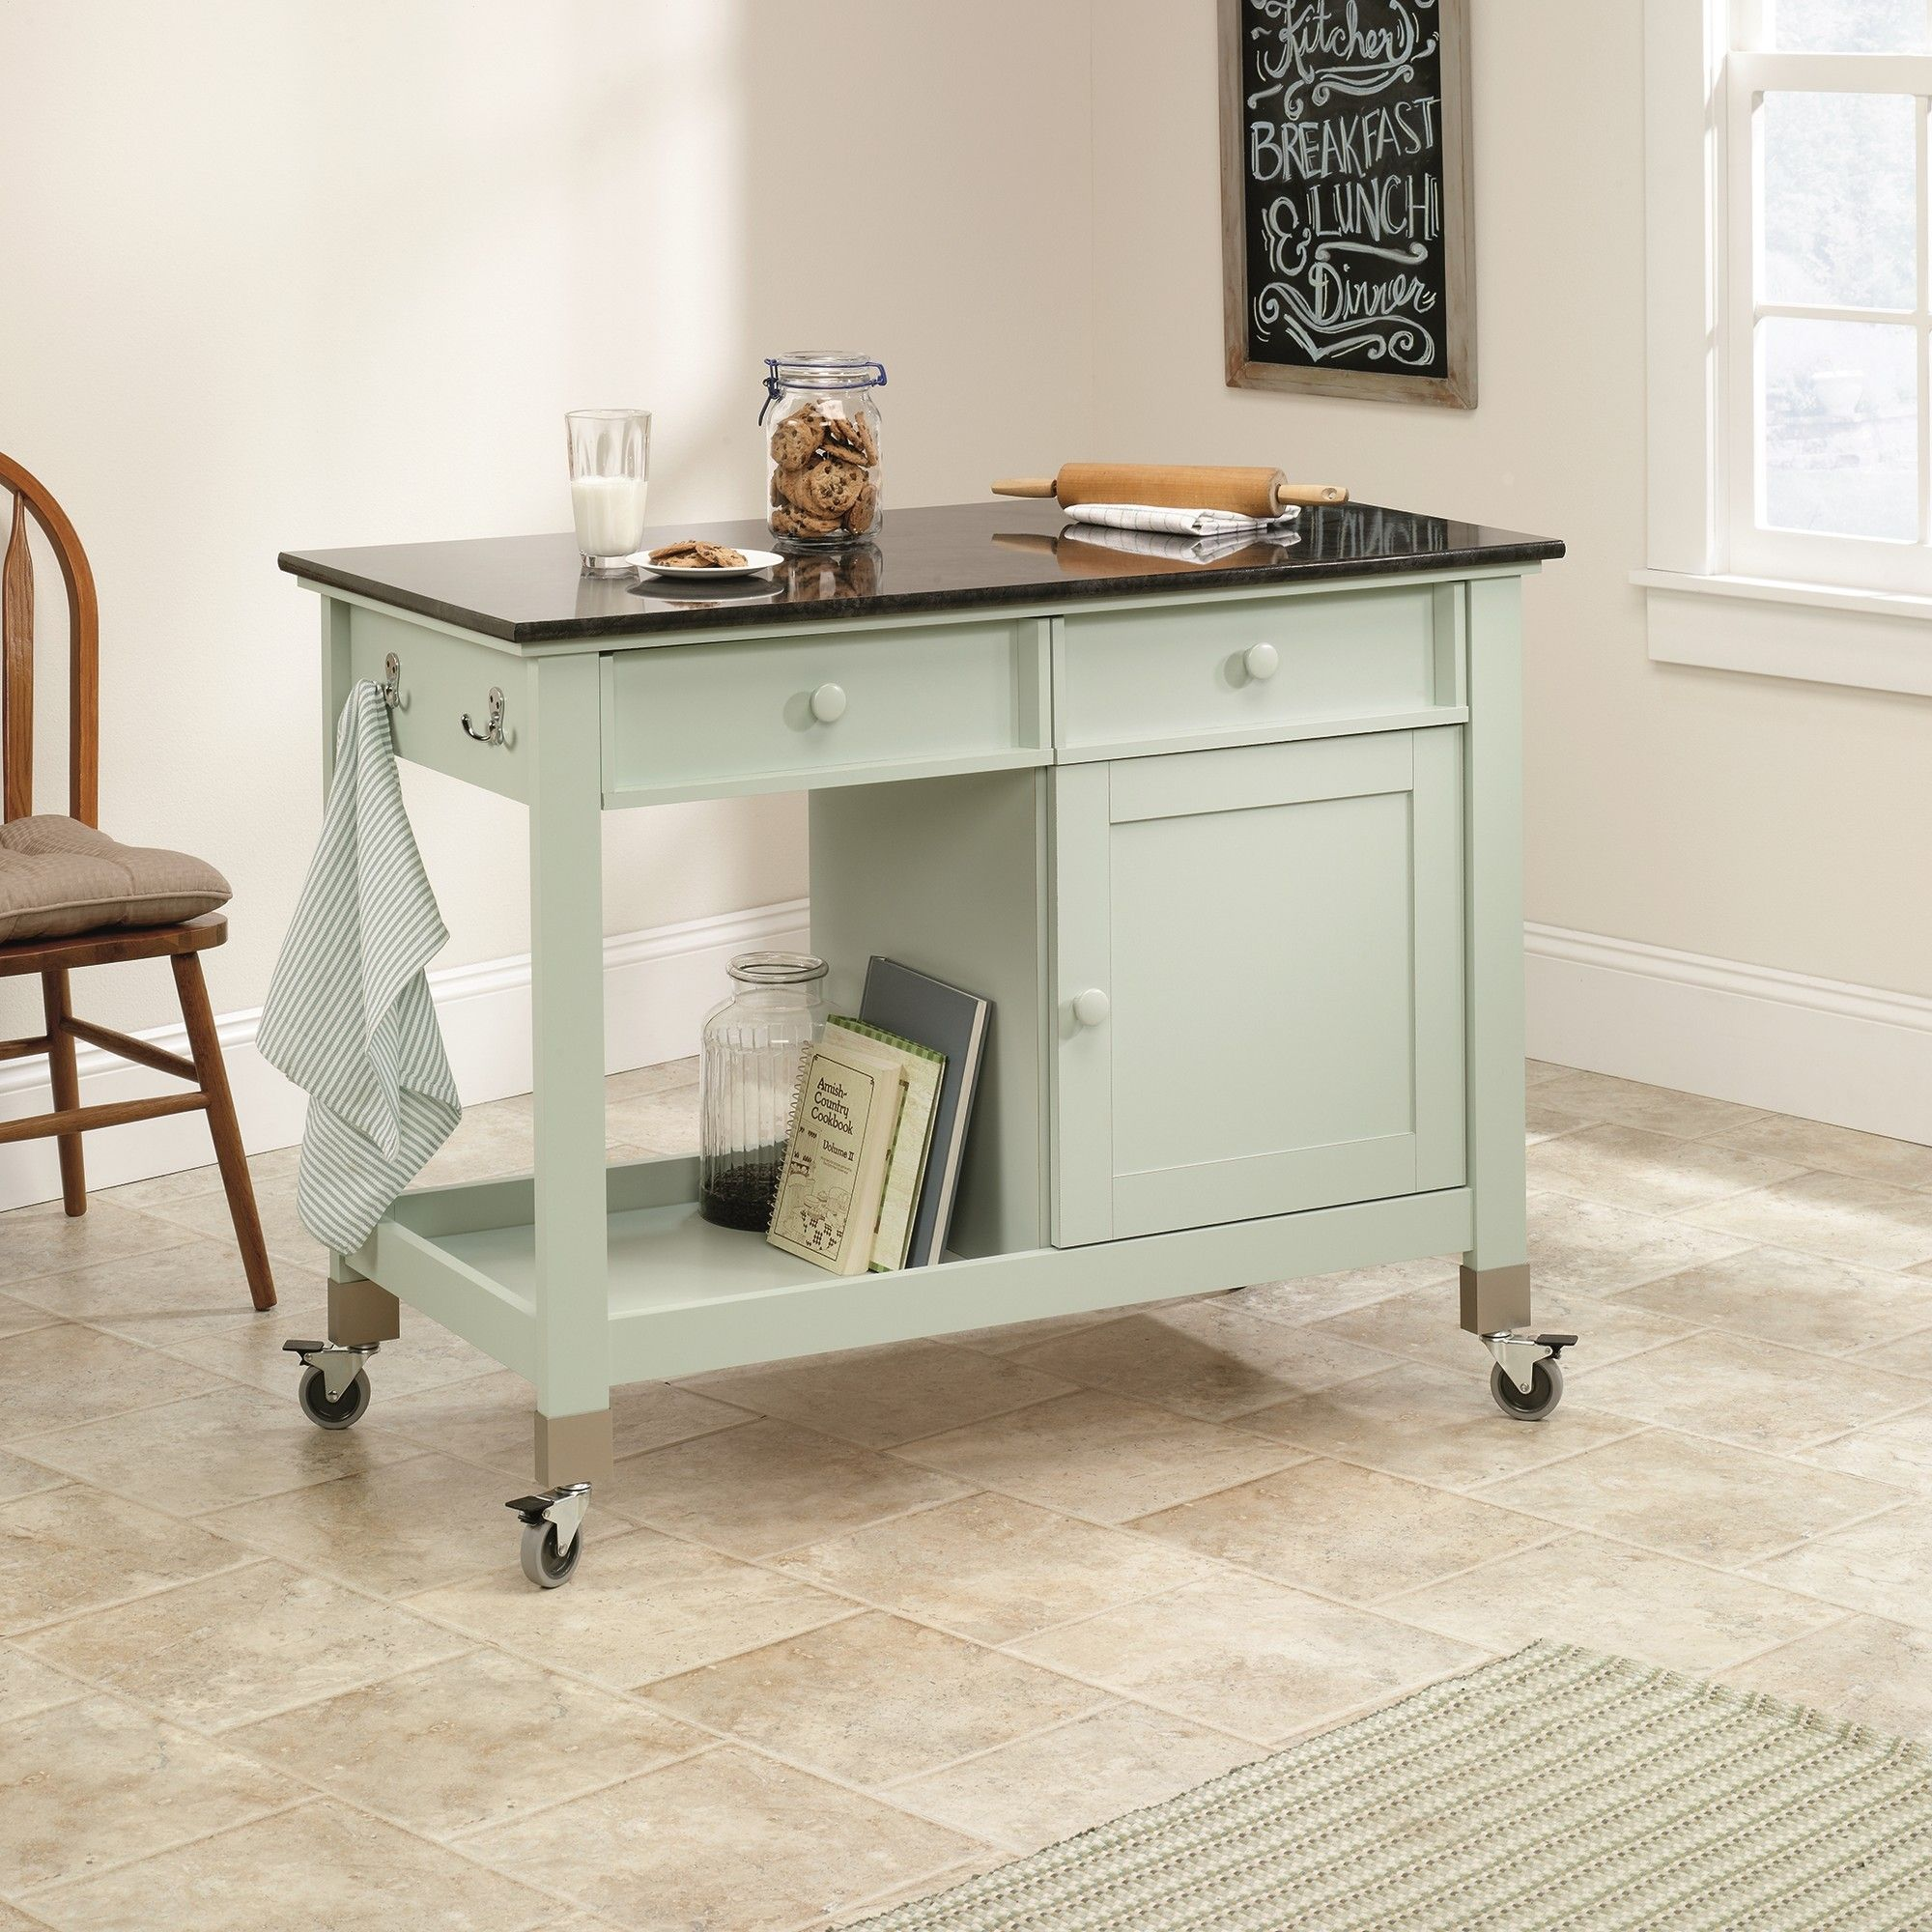 Sauder Original Cottage Mobile Kitchen Island & Reviews